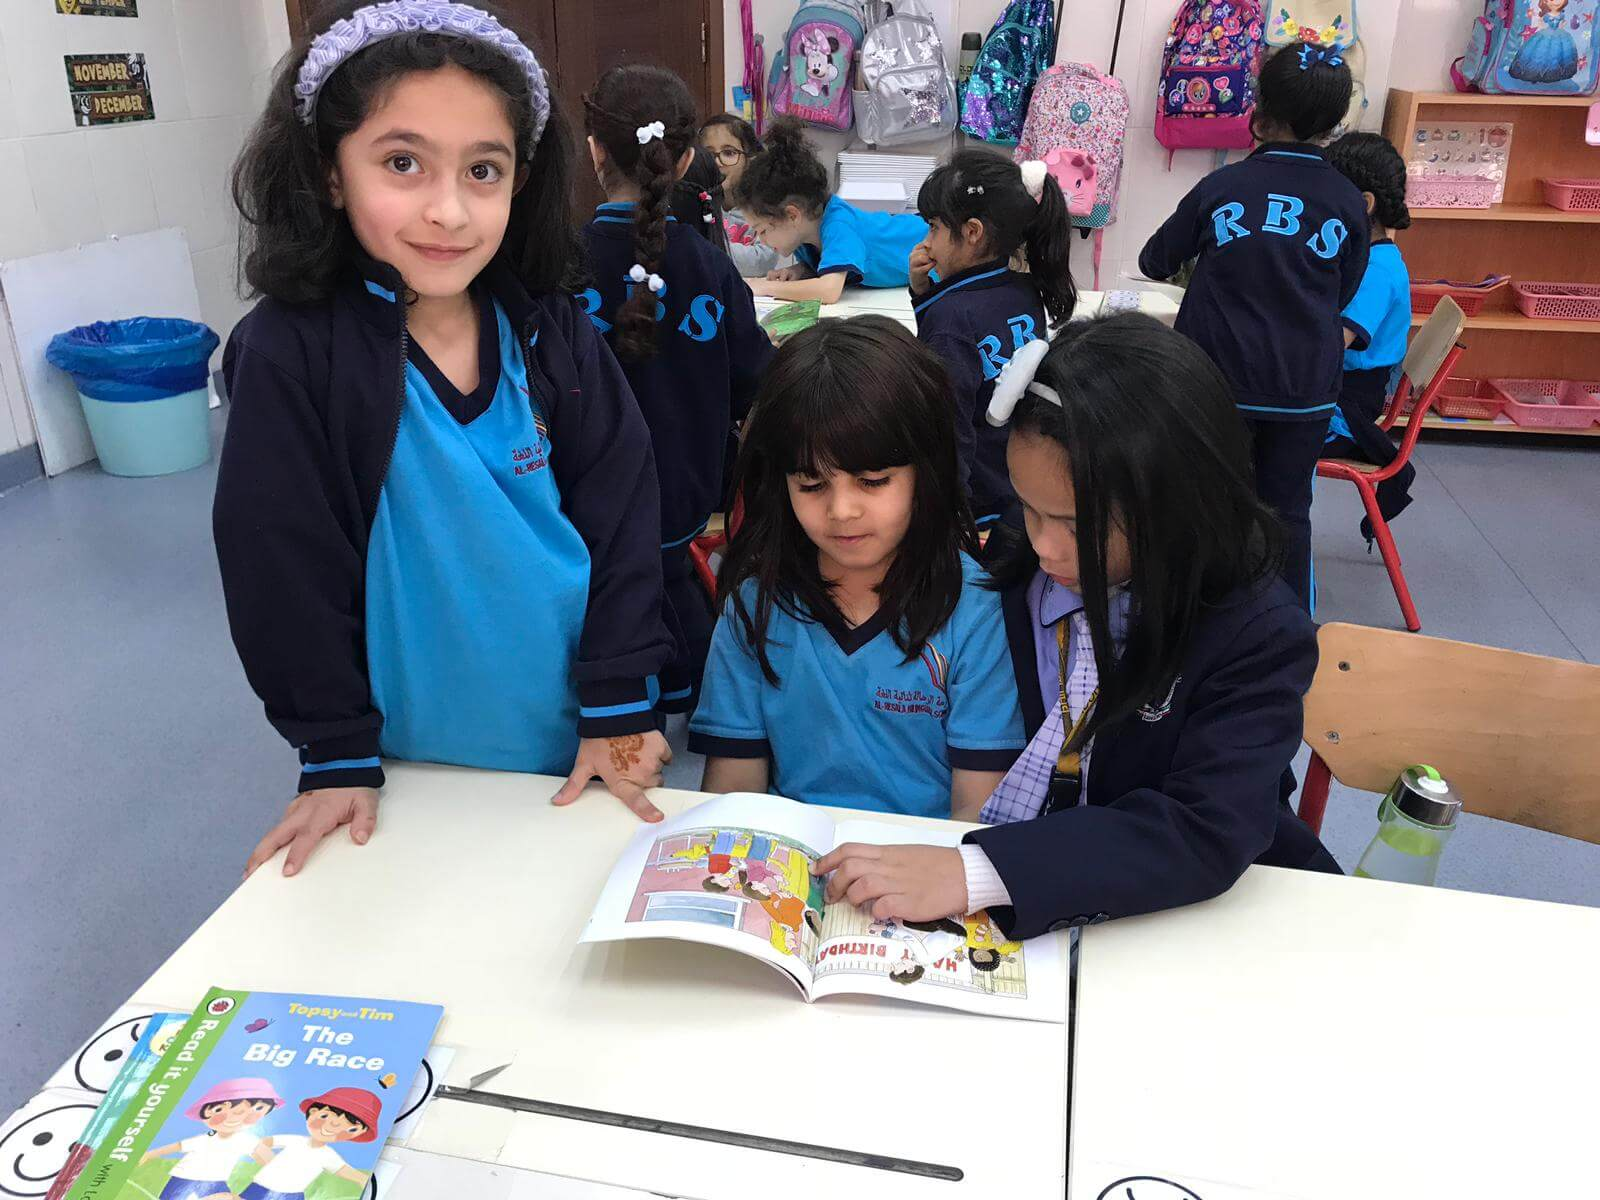 Philipino School Visit - Reading Activities